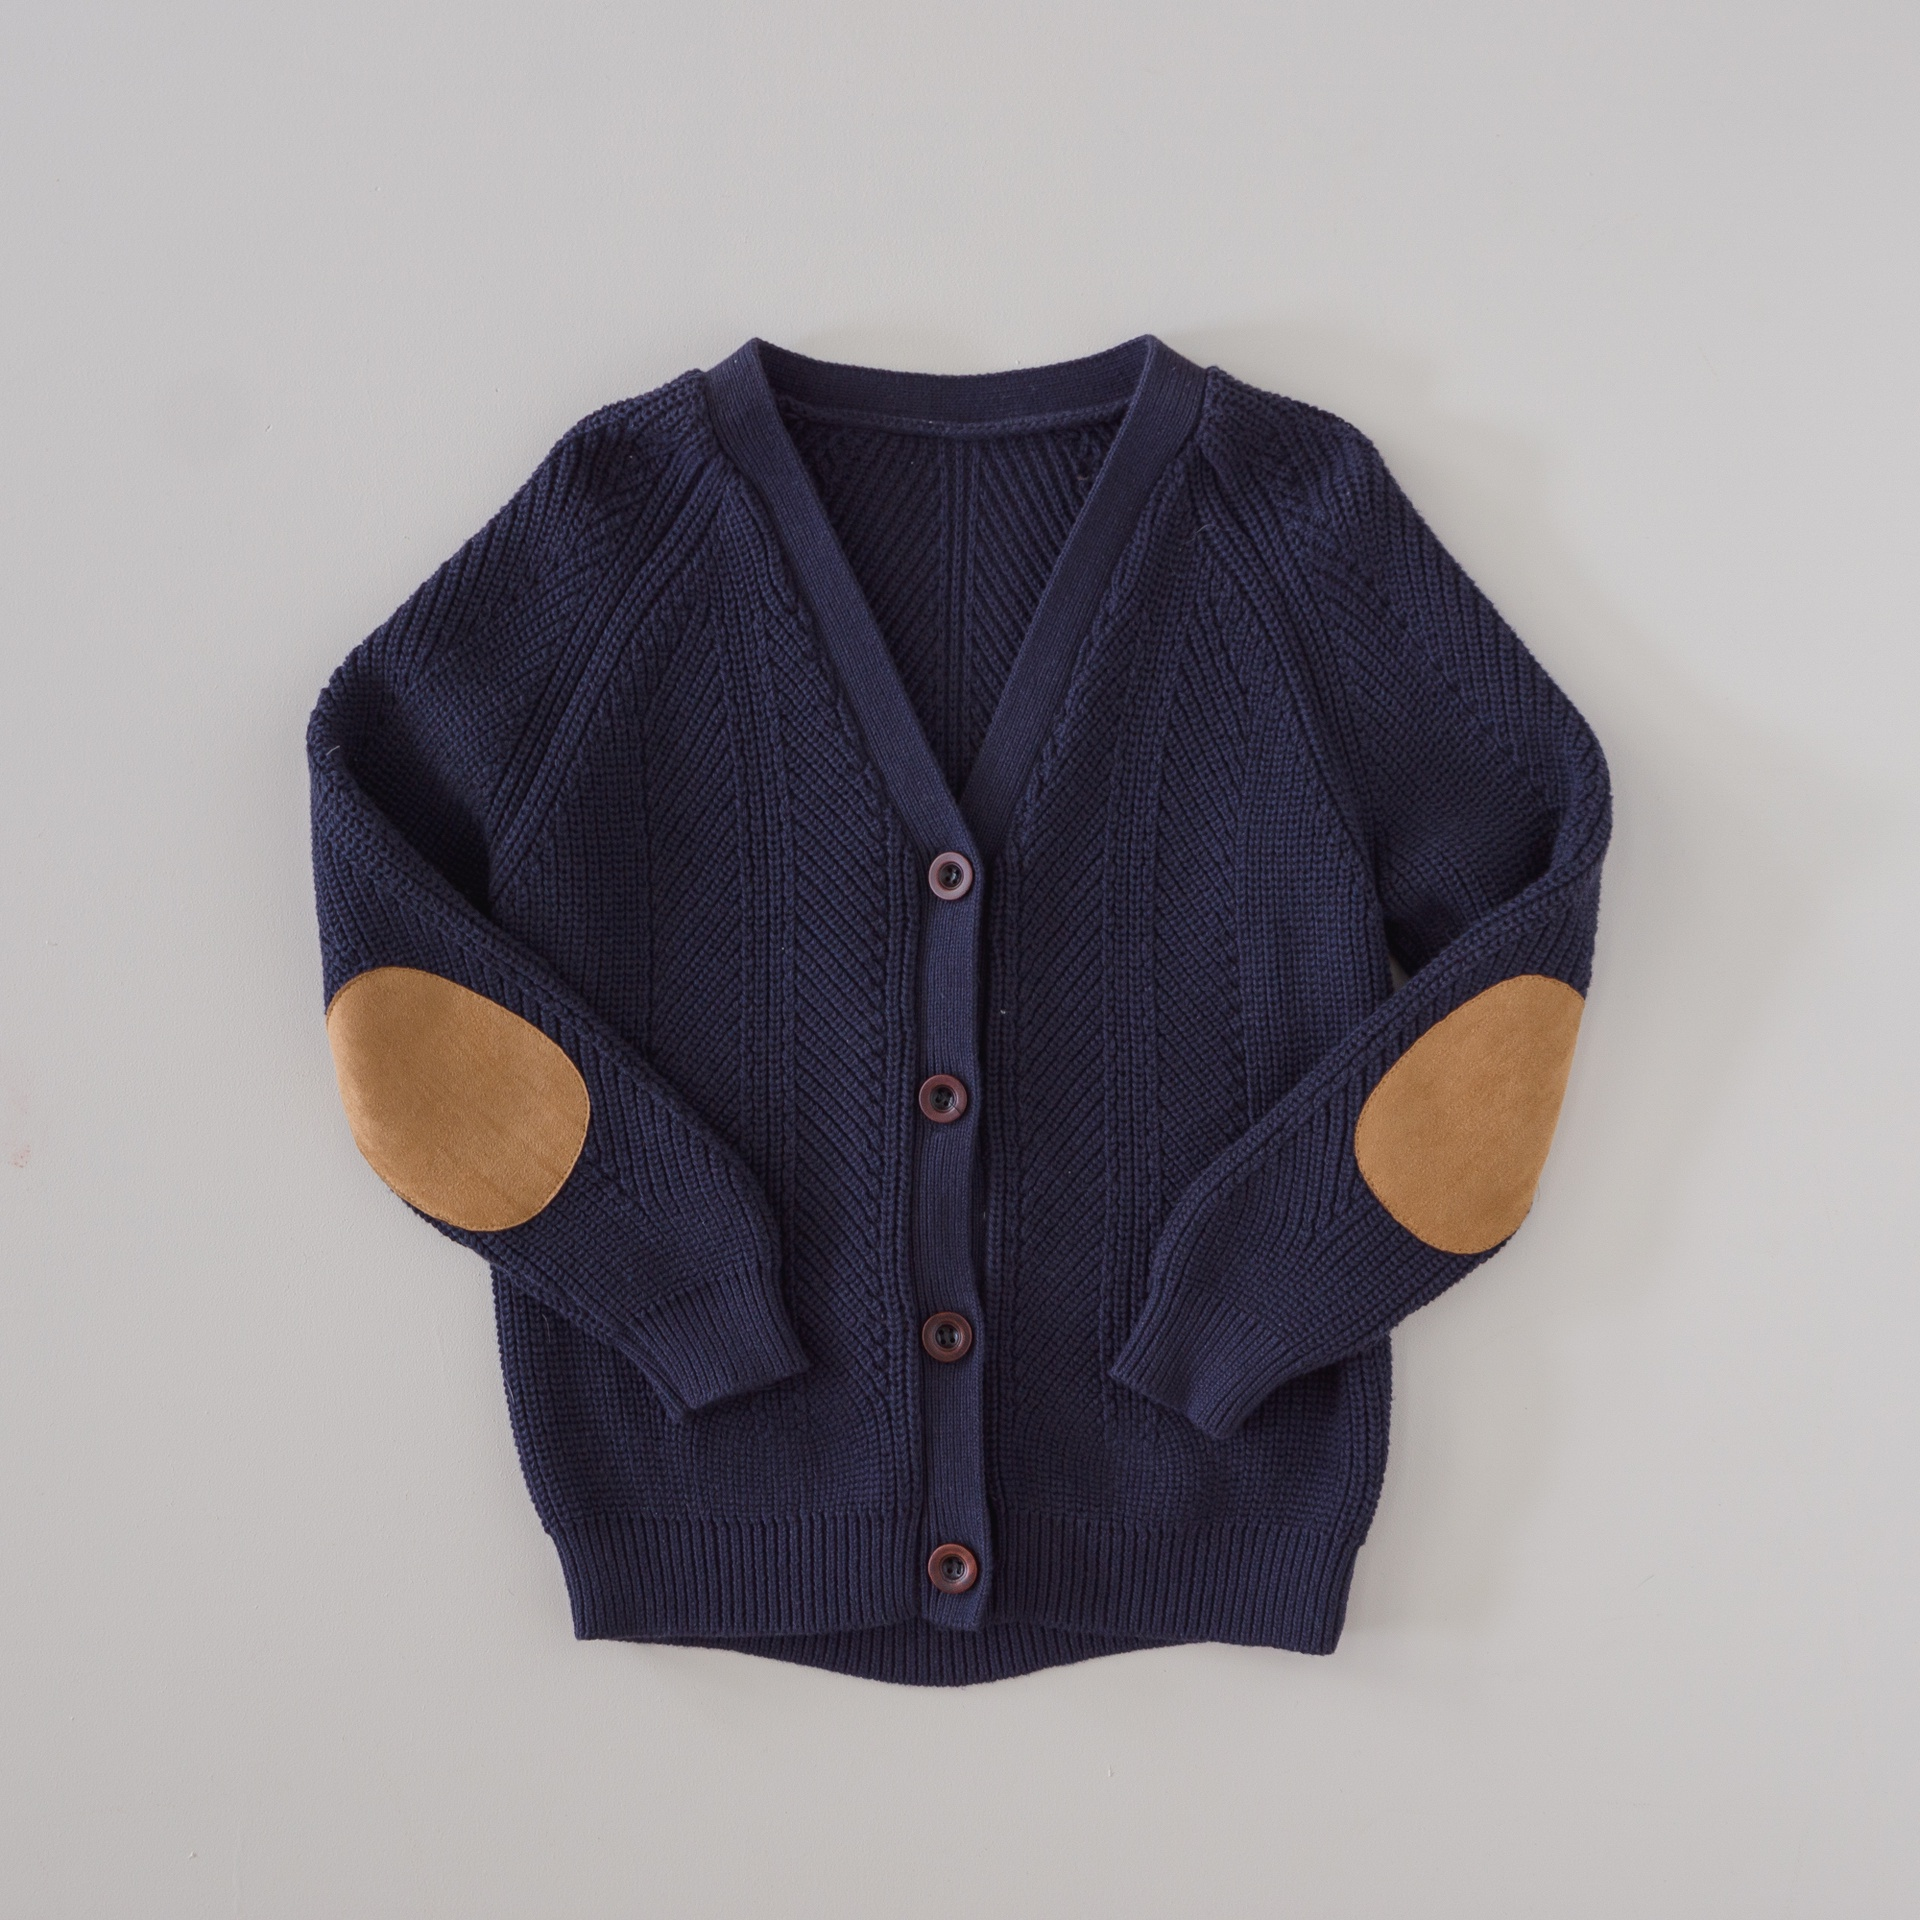 Two Darlings Kids Knit Cardigan (midnight) ** Pre Order